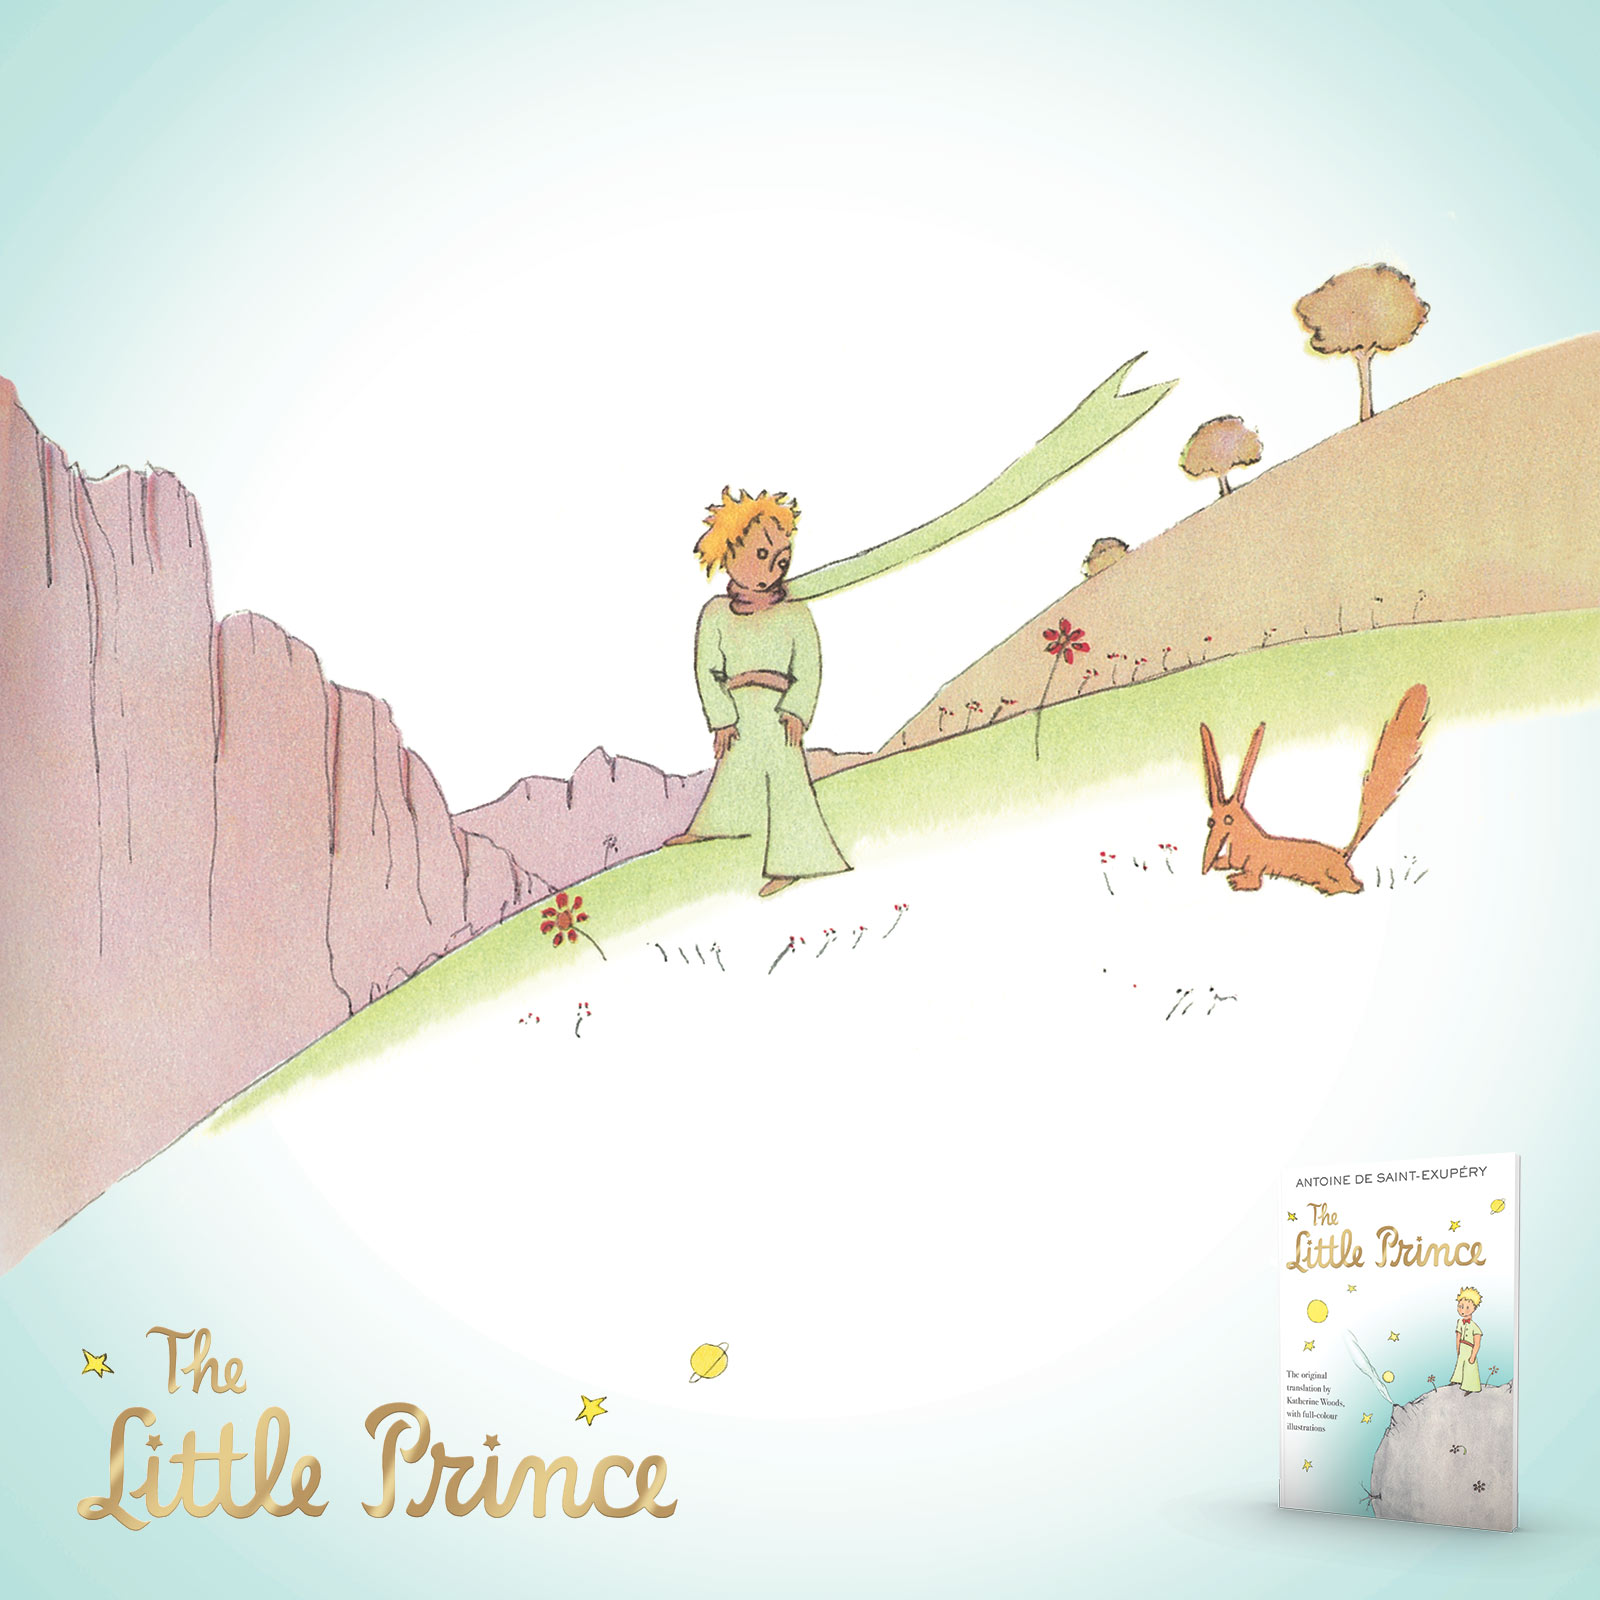 5 Quotes To Remember From The Little Prince